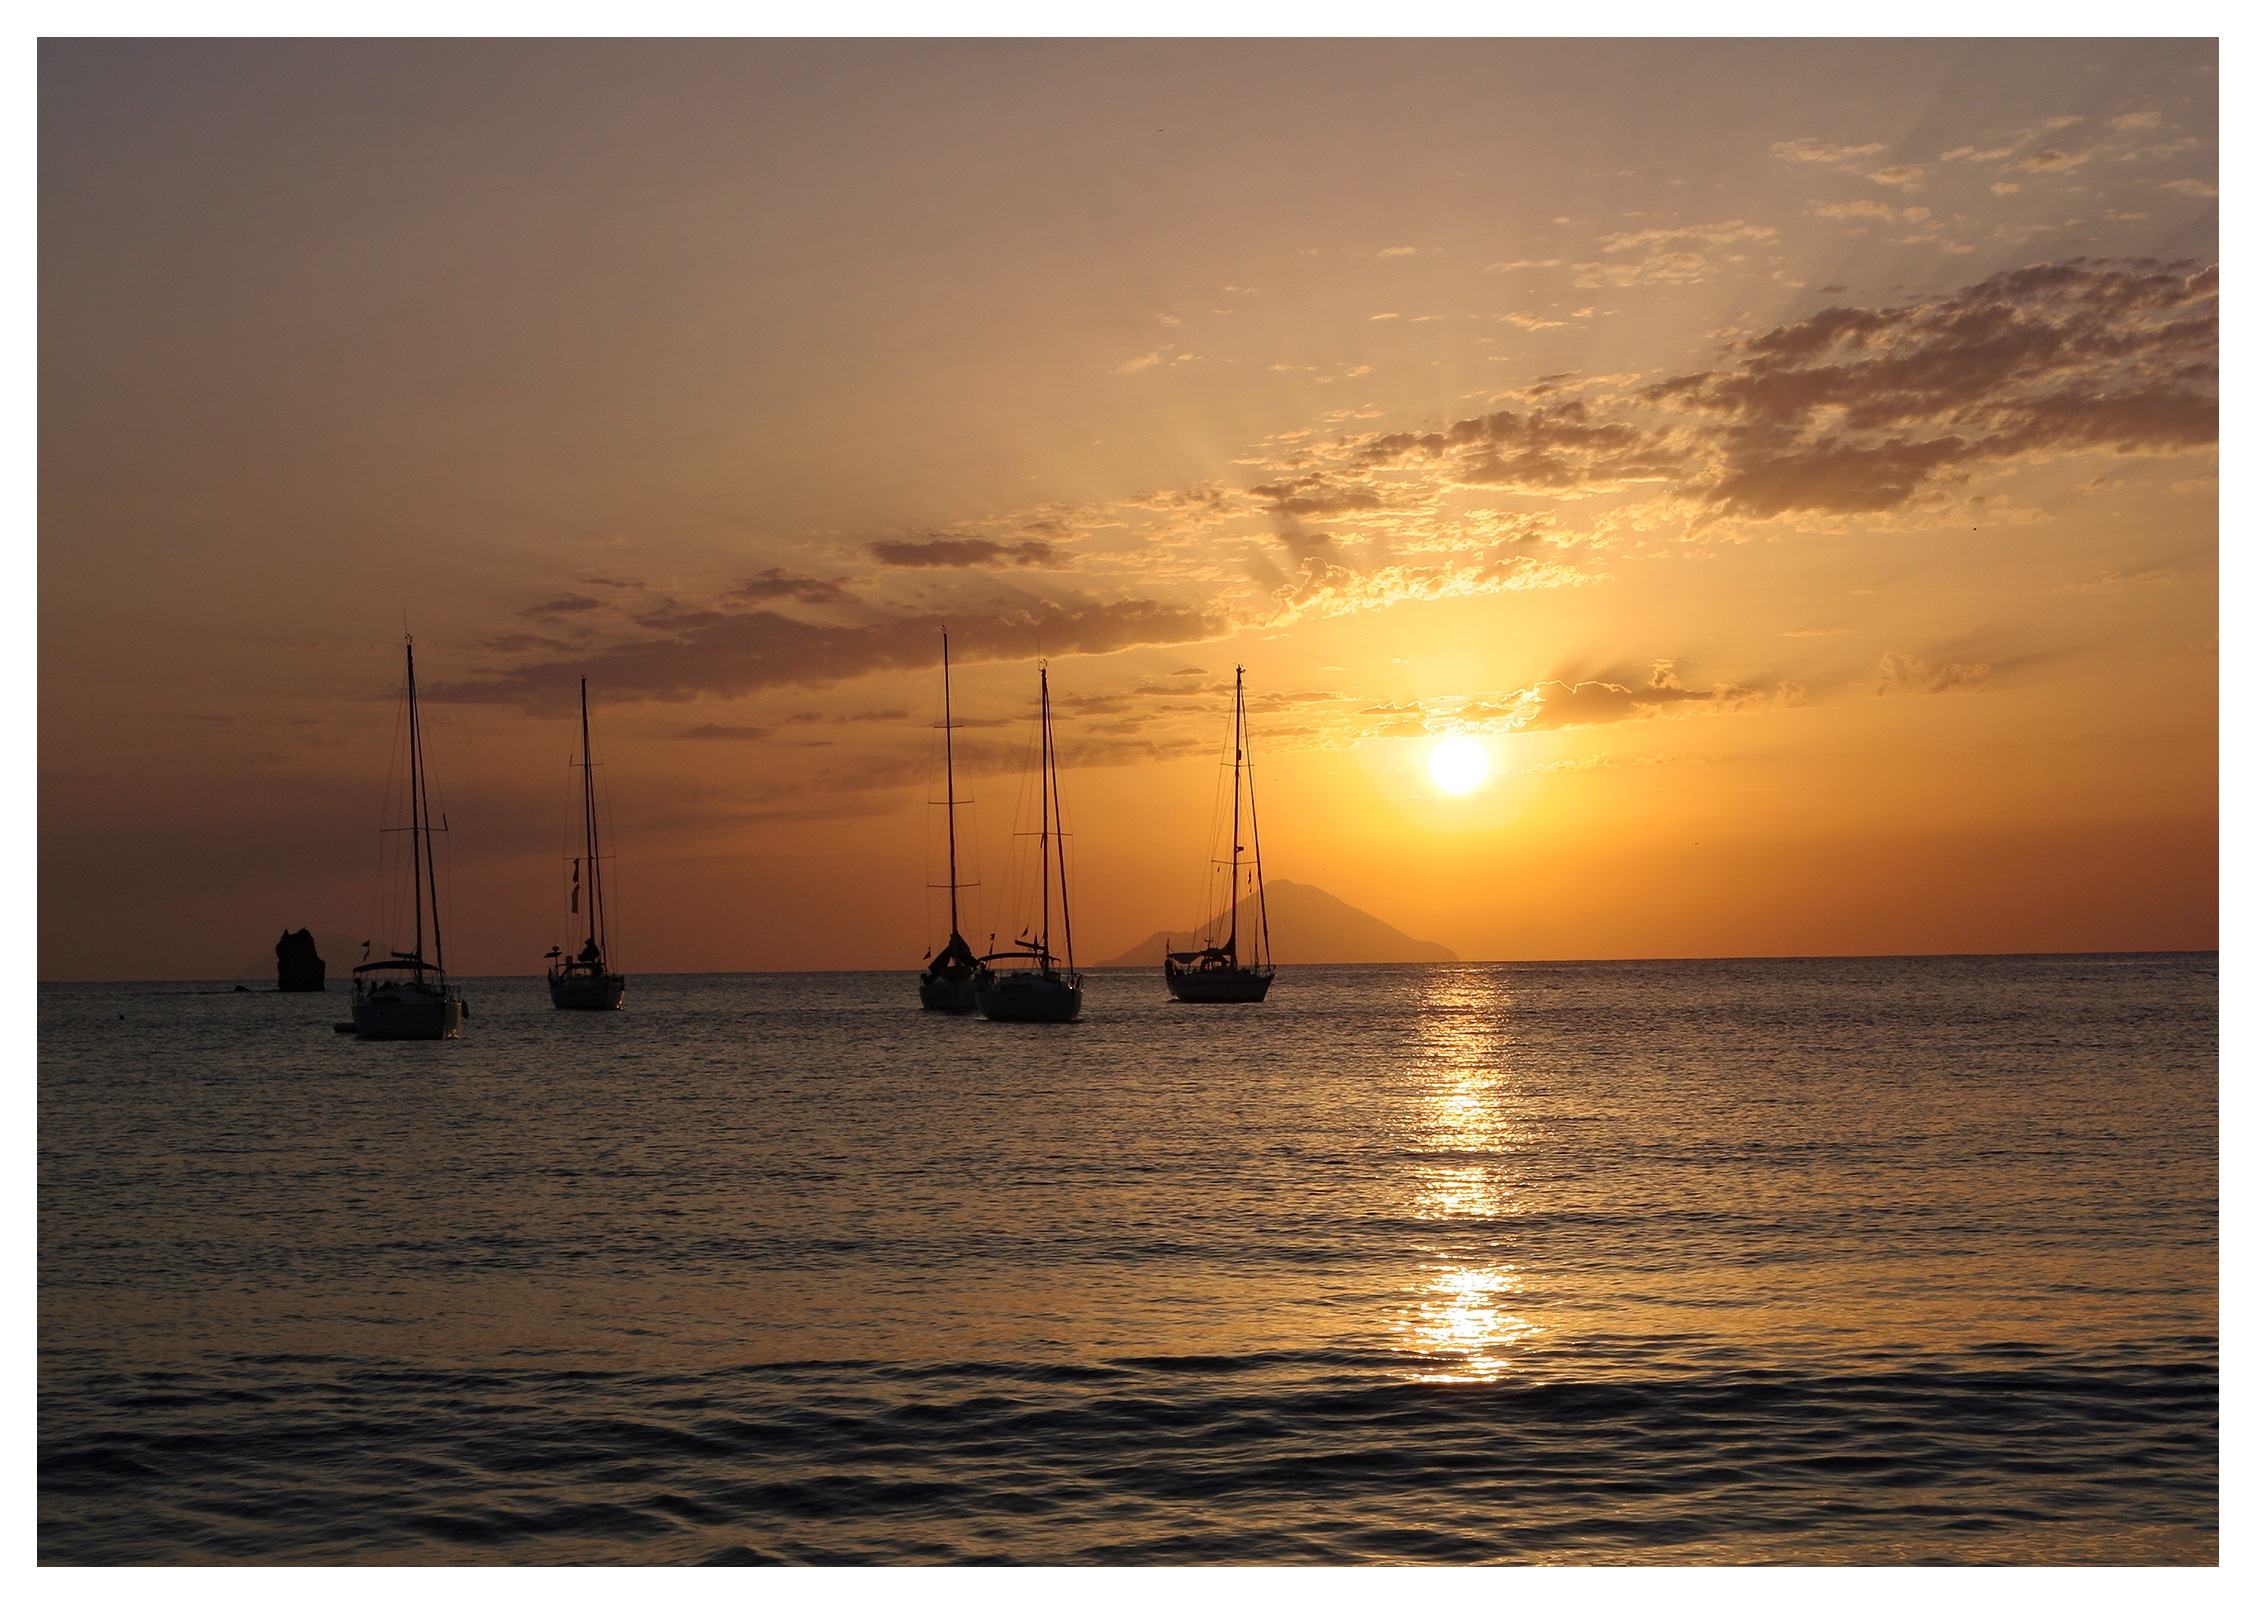 Yachting photography: Yachts anchored in a glorious sunset off Vulcano at the Aeolian Islands, Sicily